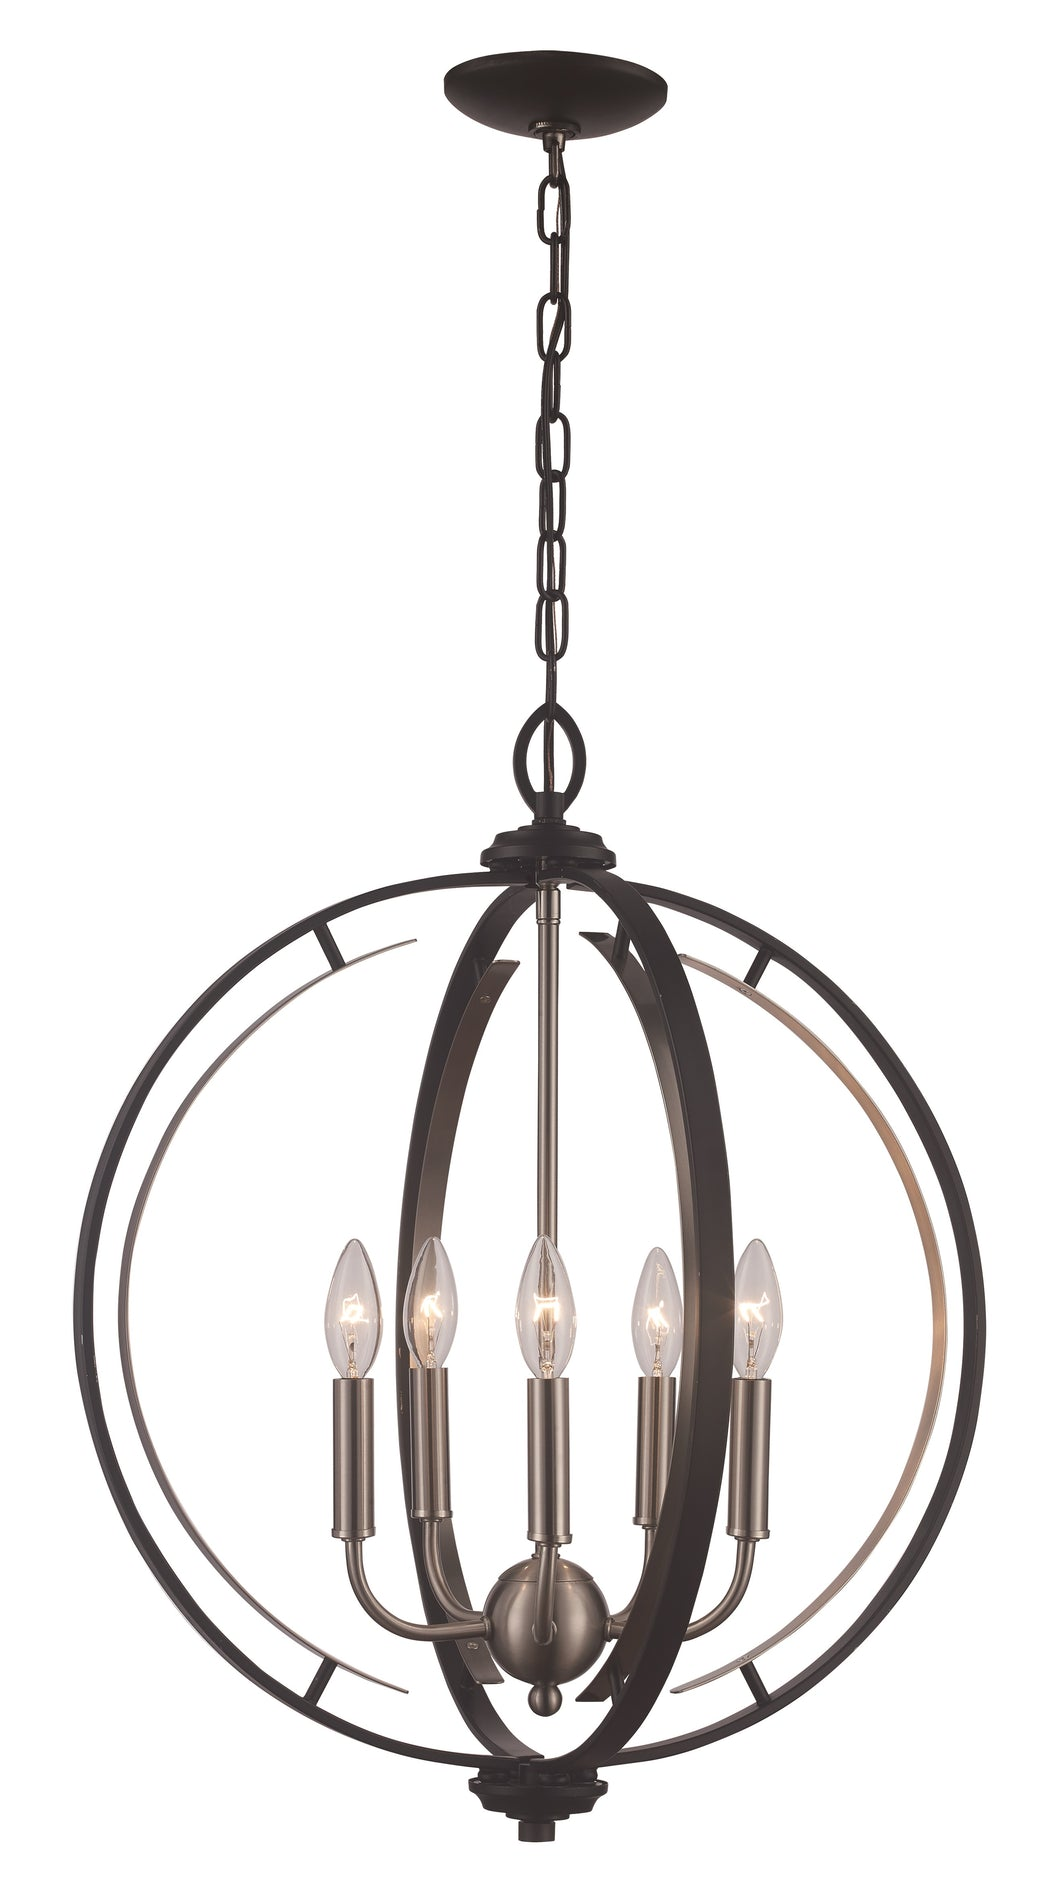 Black And Crushed Nickel Open Circular Chandelier